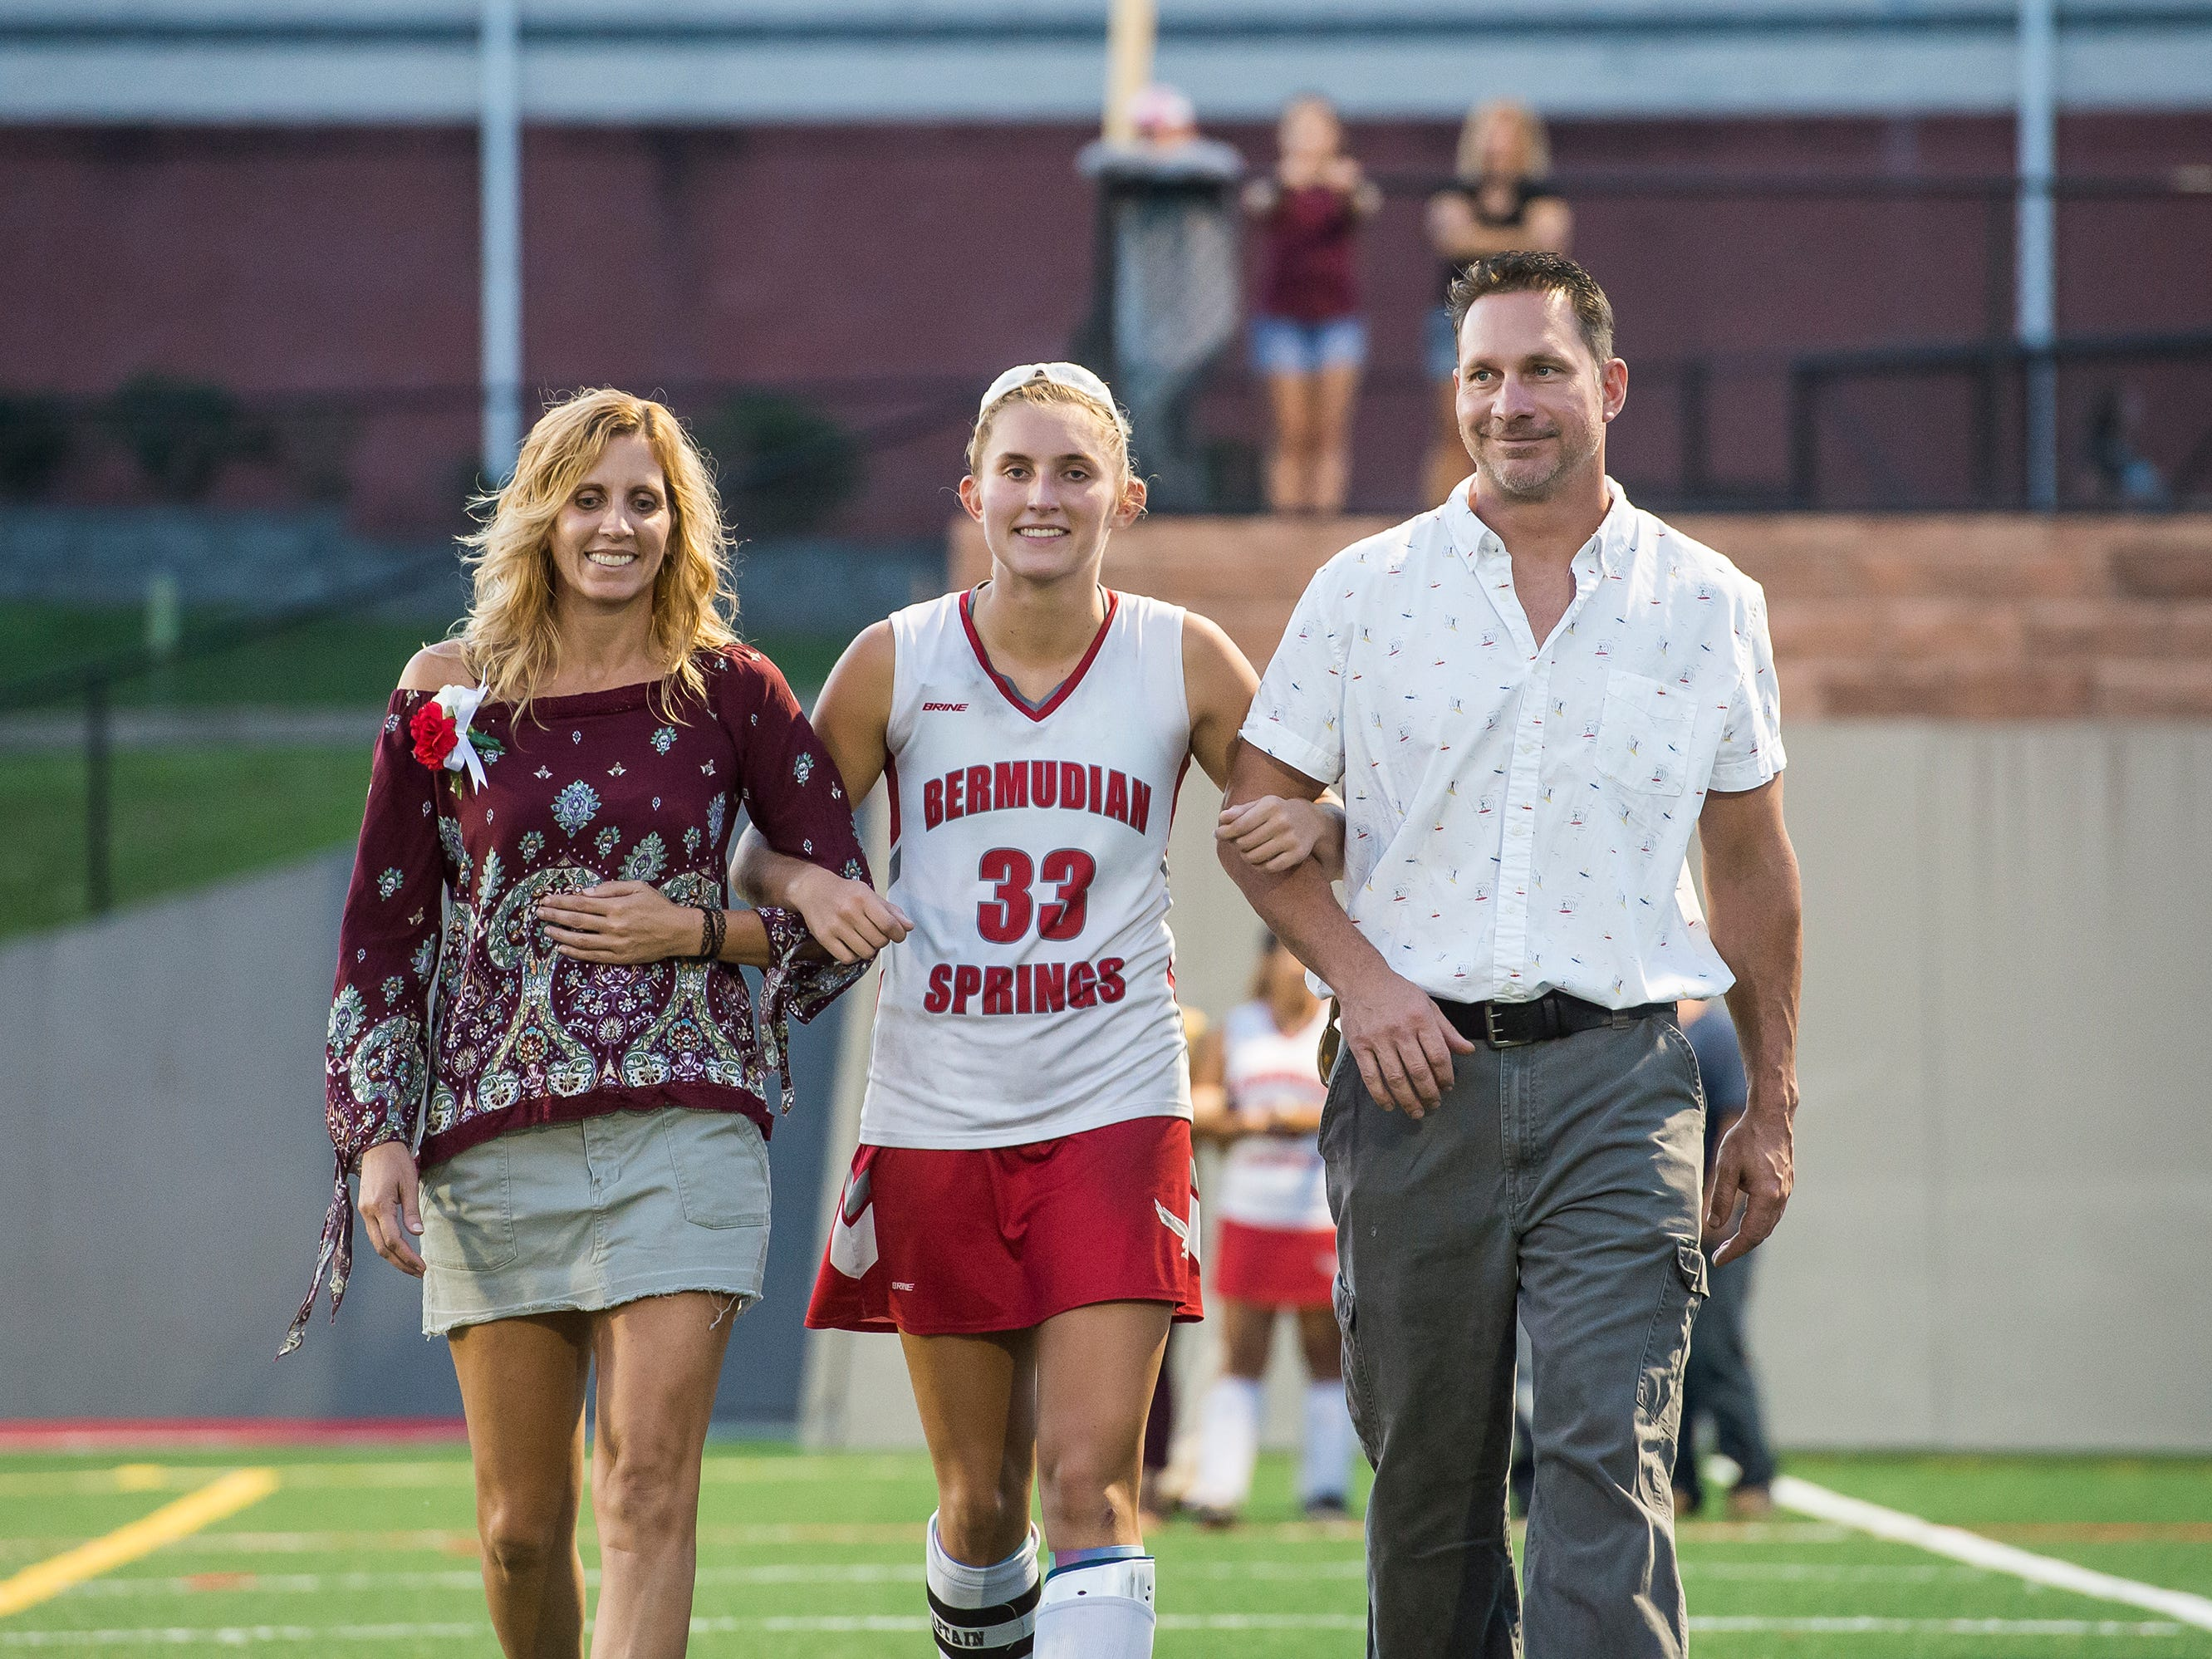 Bermudian Springs senior Kayla Pyles is recognized during a senior appreciation night following a game against Littlestown on Tuesday, October 9, 2018.